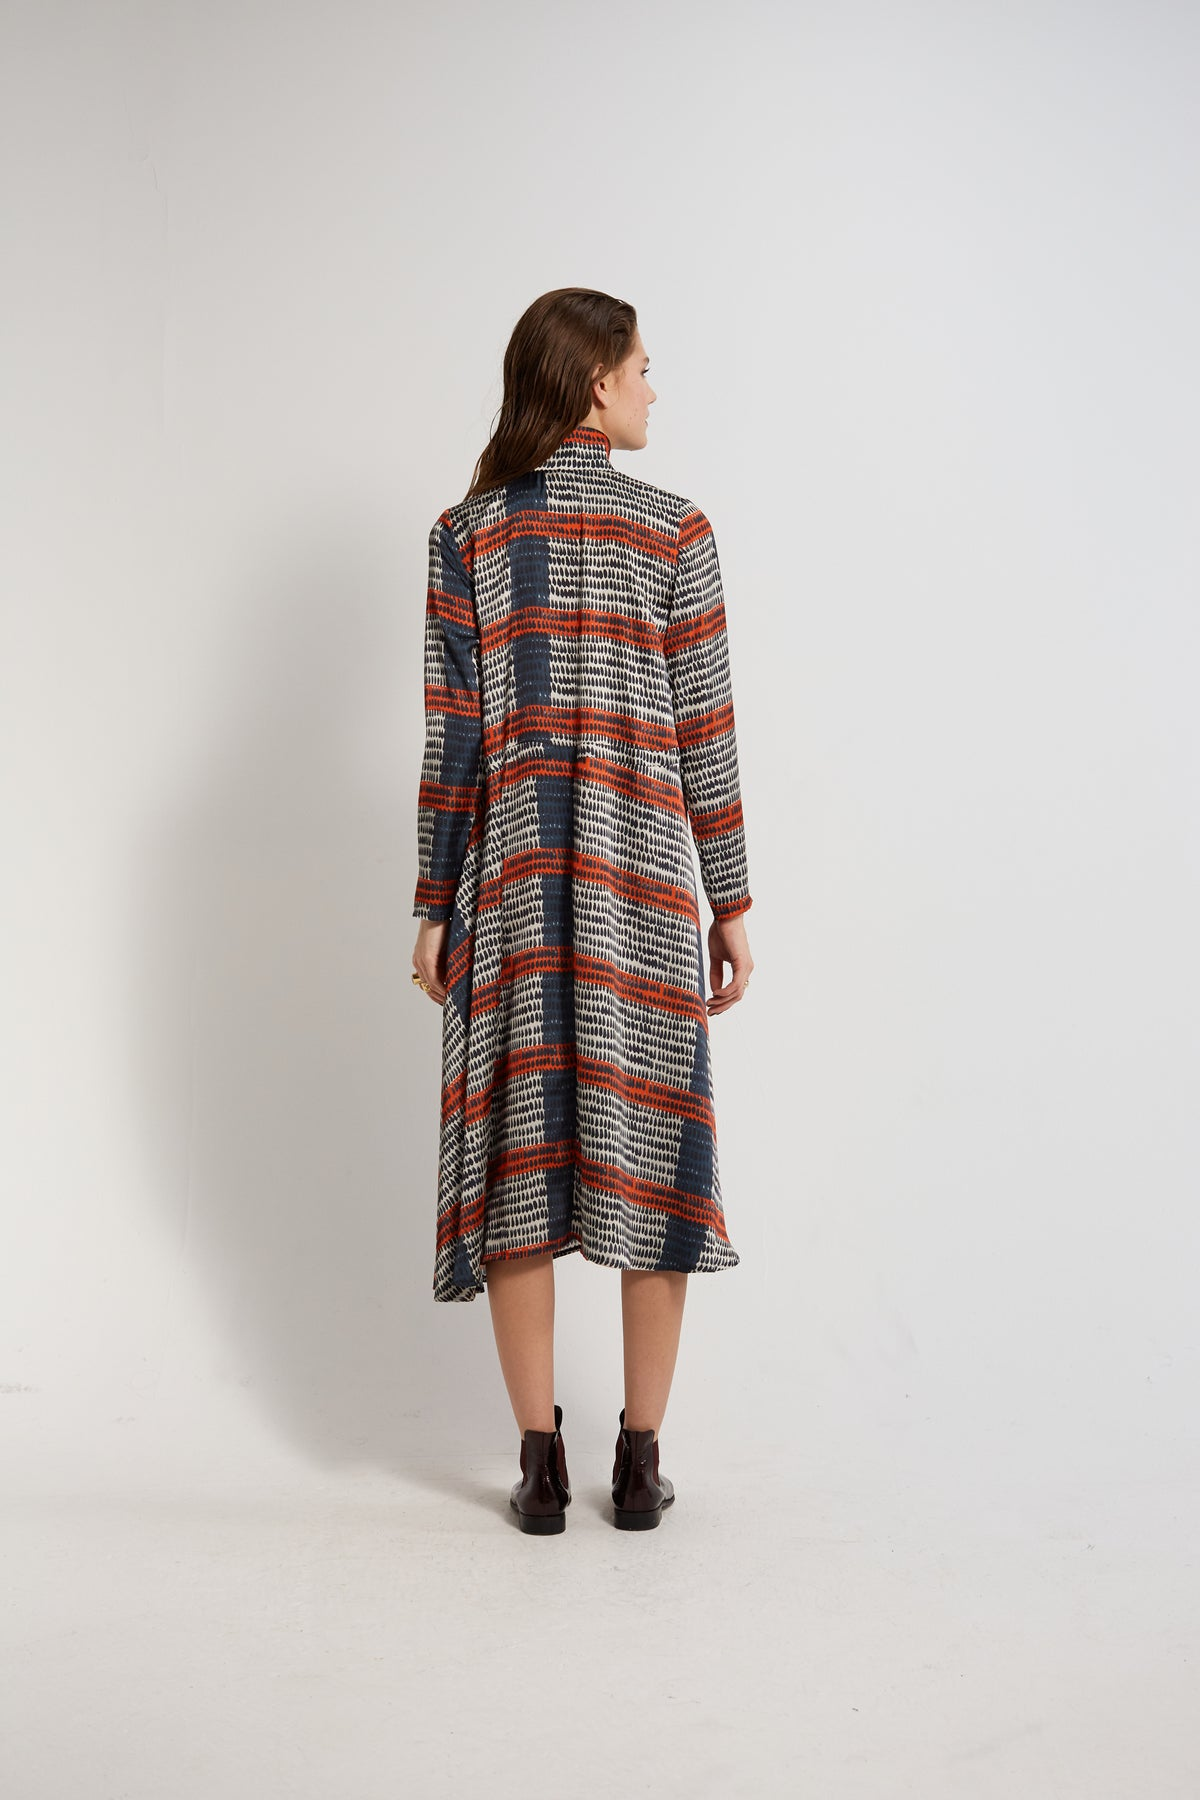 Java dress in Feather print